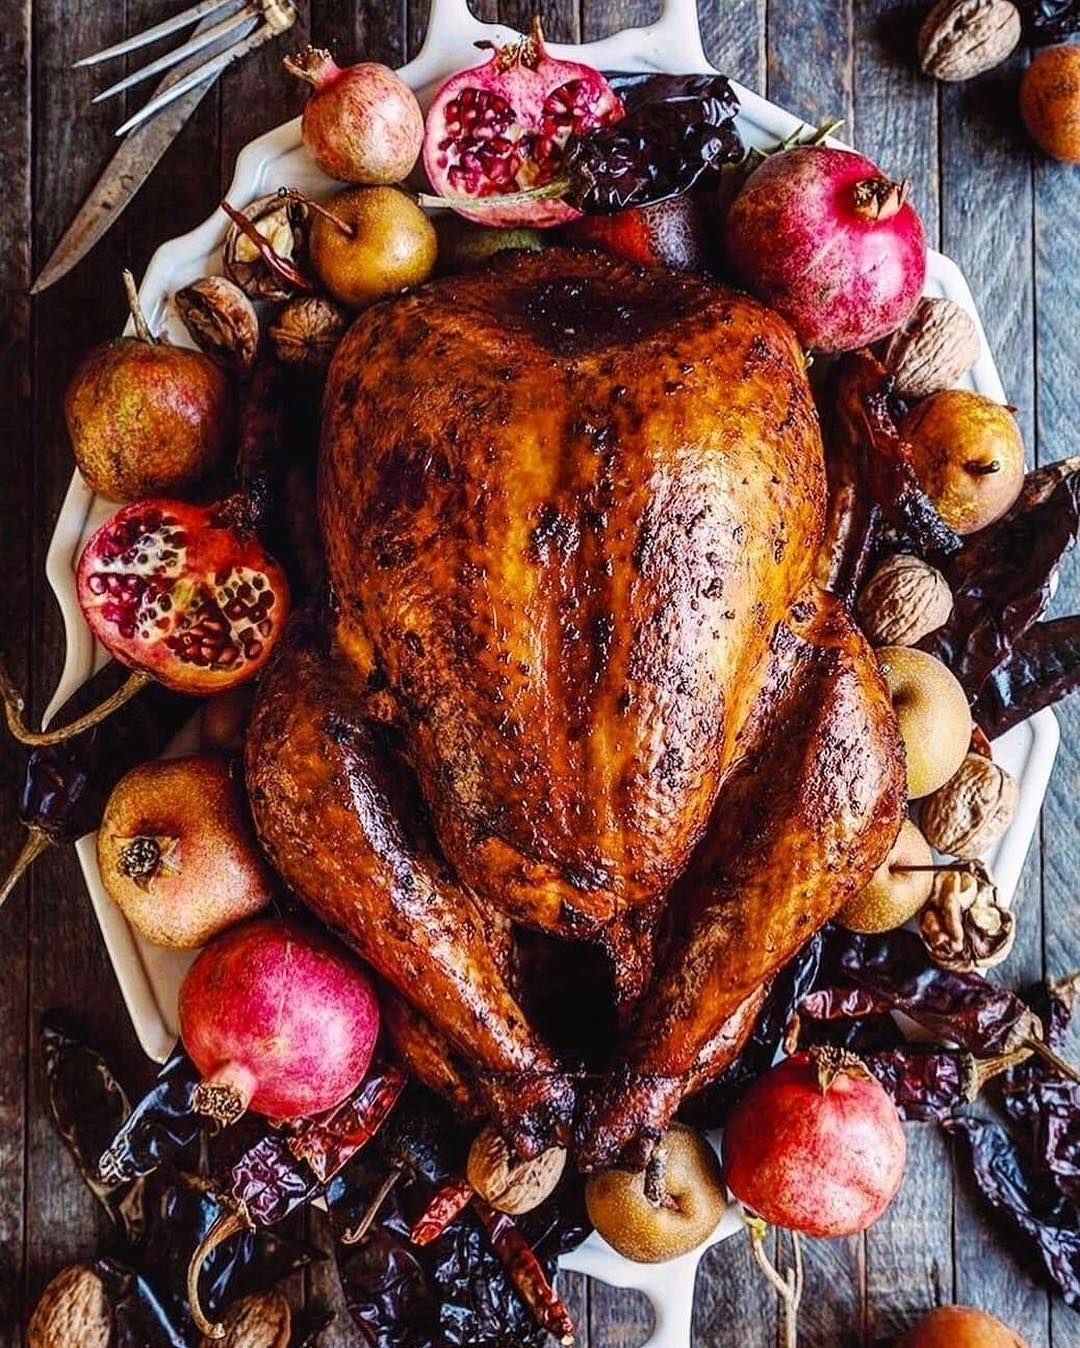 Does Your Family Do Turkey Or A Beef Roast For The Holidays Shout Out To Honestlyyum Check Out The Link In Our Bio For A Ste Food Man Food Food Photo